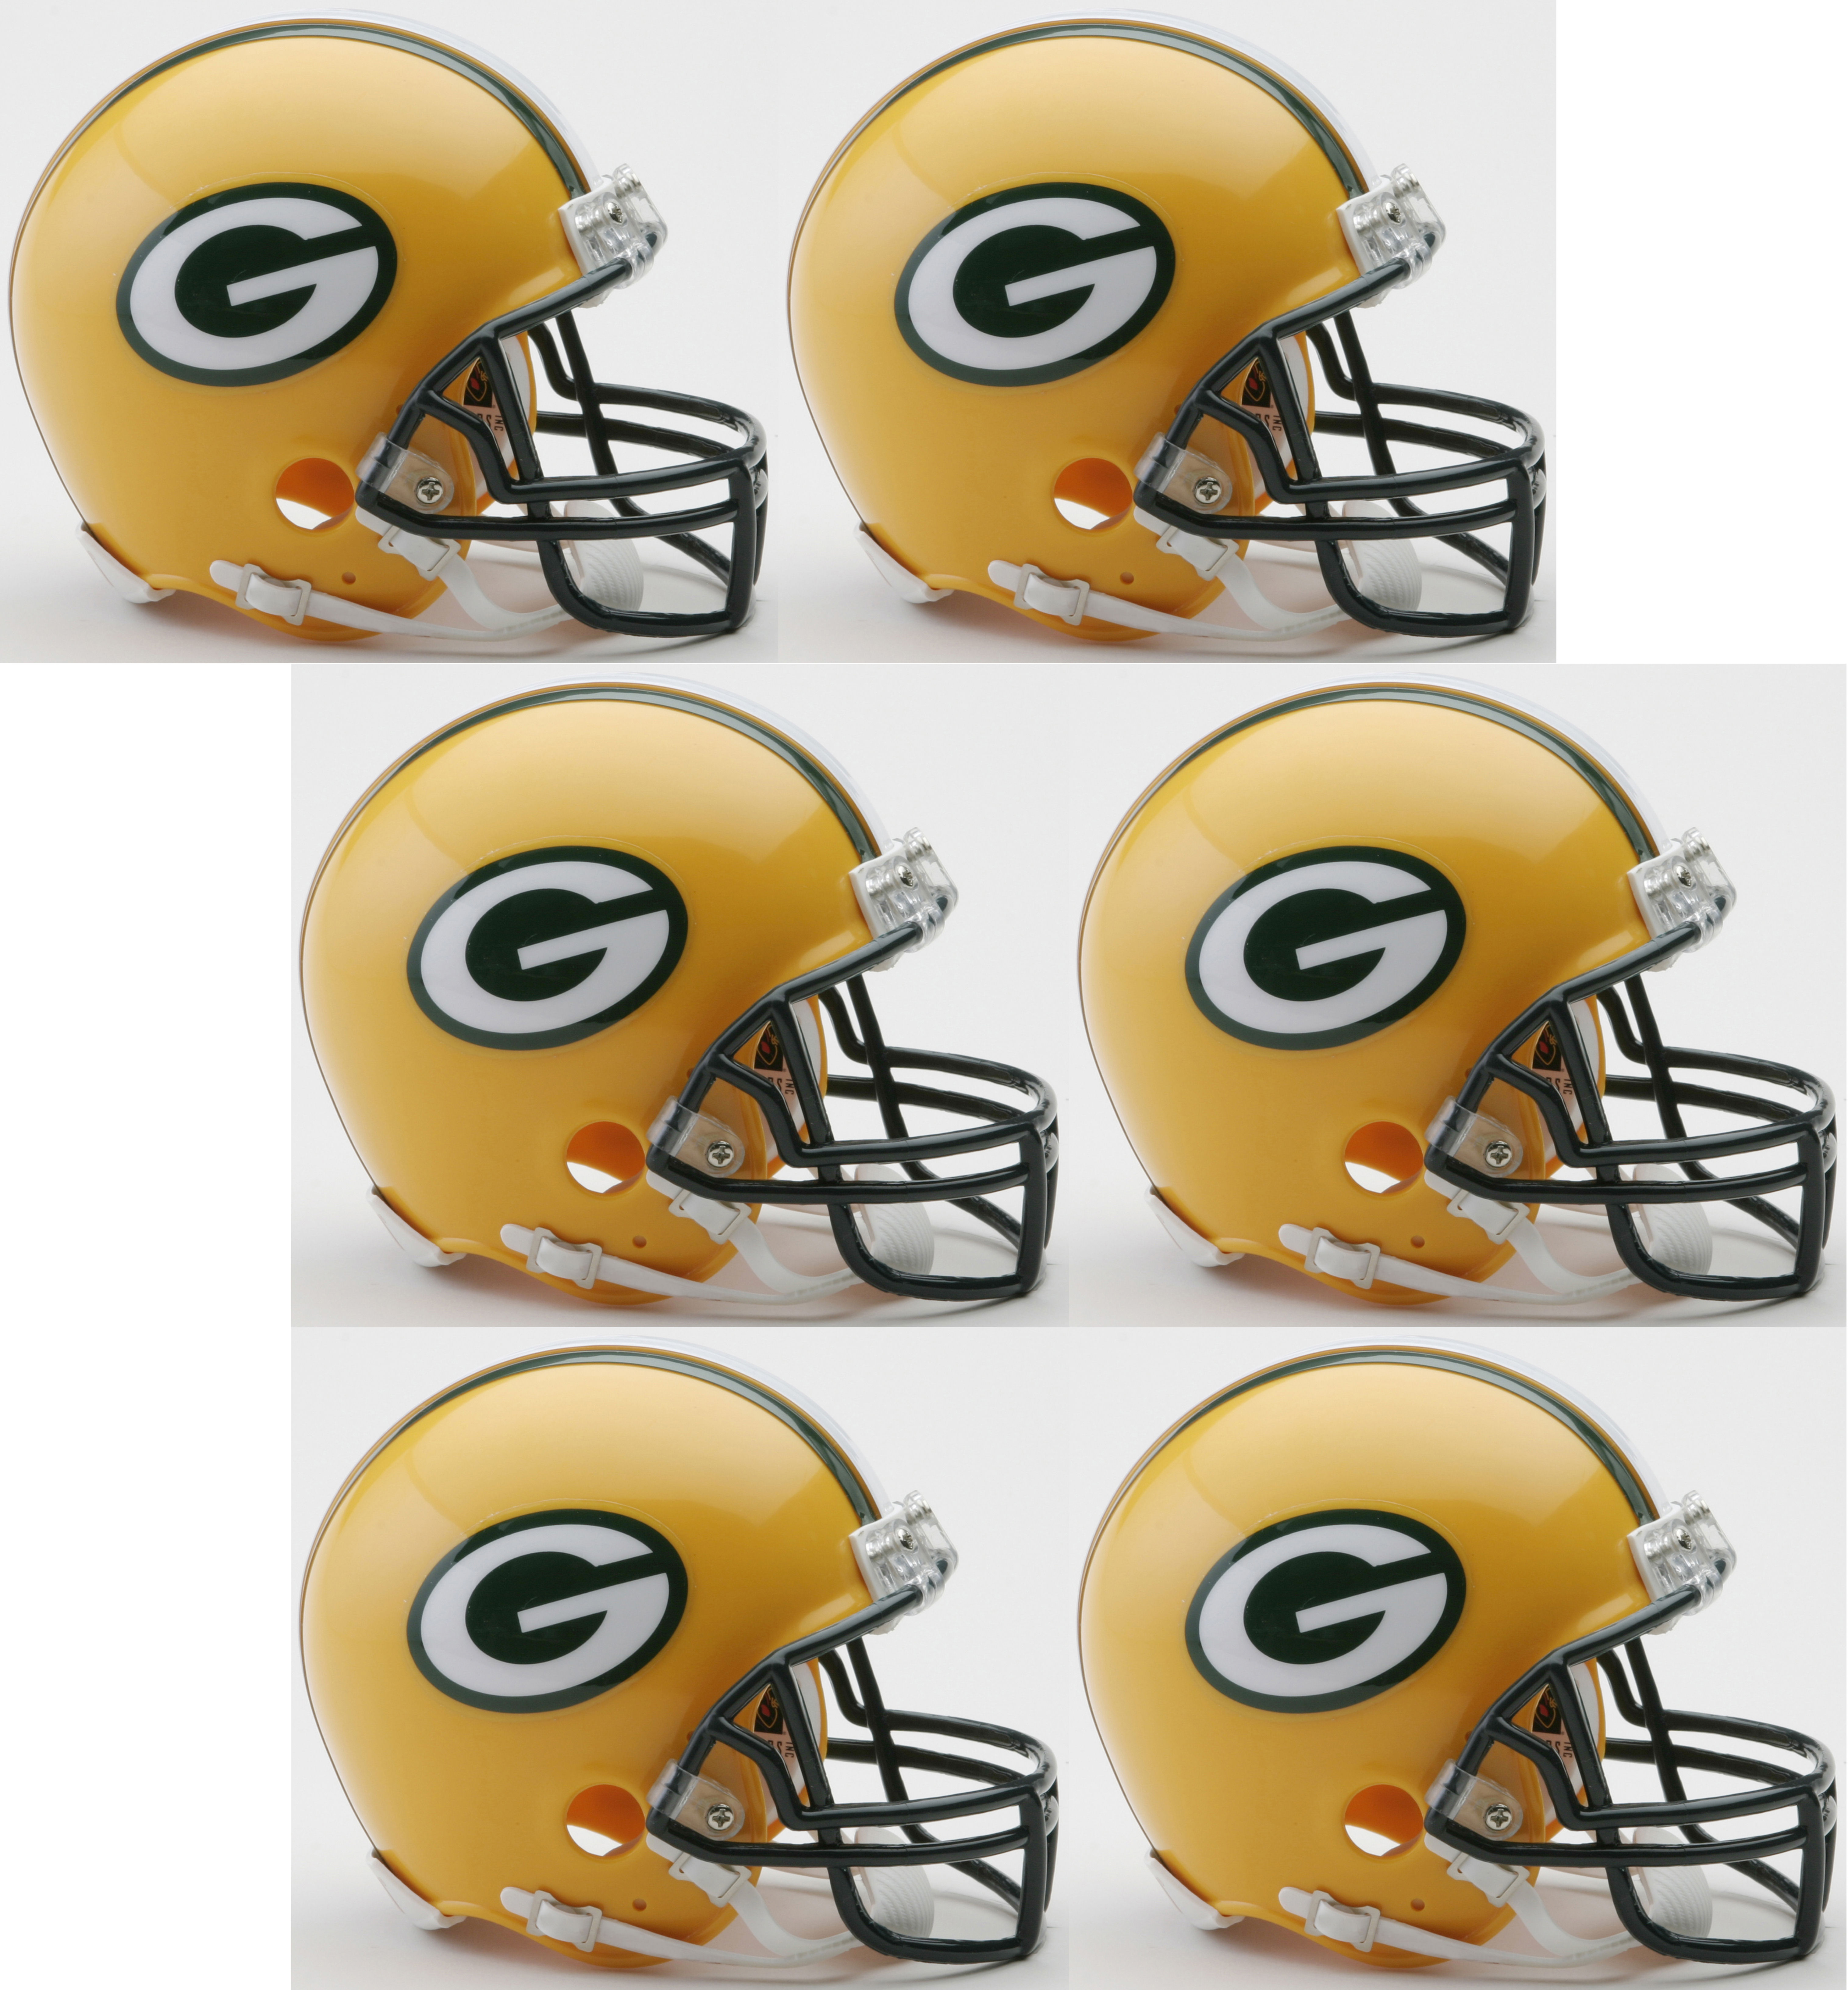 "Green Bay Packers NFL Mini Football Helmet 6 count  Green Bay Packers Mini Football Helmet 6 count.   Mini football helmet with great graphics.    Official NFL mini football helmet with official NFL team decals.    ABS plastic mini football helmet shells with plastic facemask.    Realistic interior foam padding, vinyl-leather chin strap.    This is an affordable NFL football helmet for the true fan.    Size 12 scale versions of NFL football helmets.    Size 6""(L), 4 ½""(W), 5""(H) - (NOT FOR WEARING)."